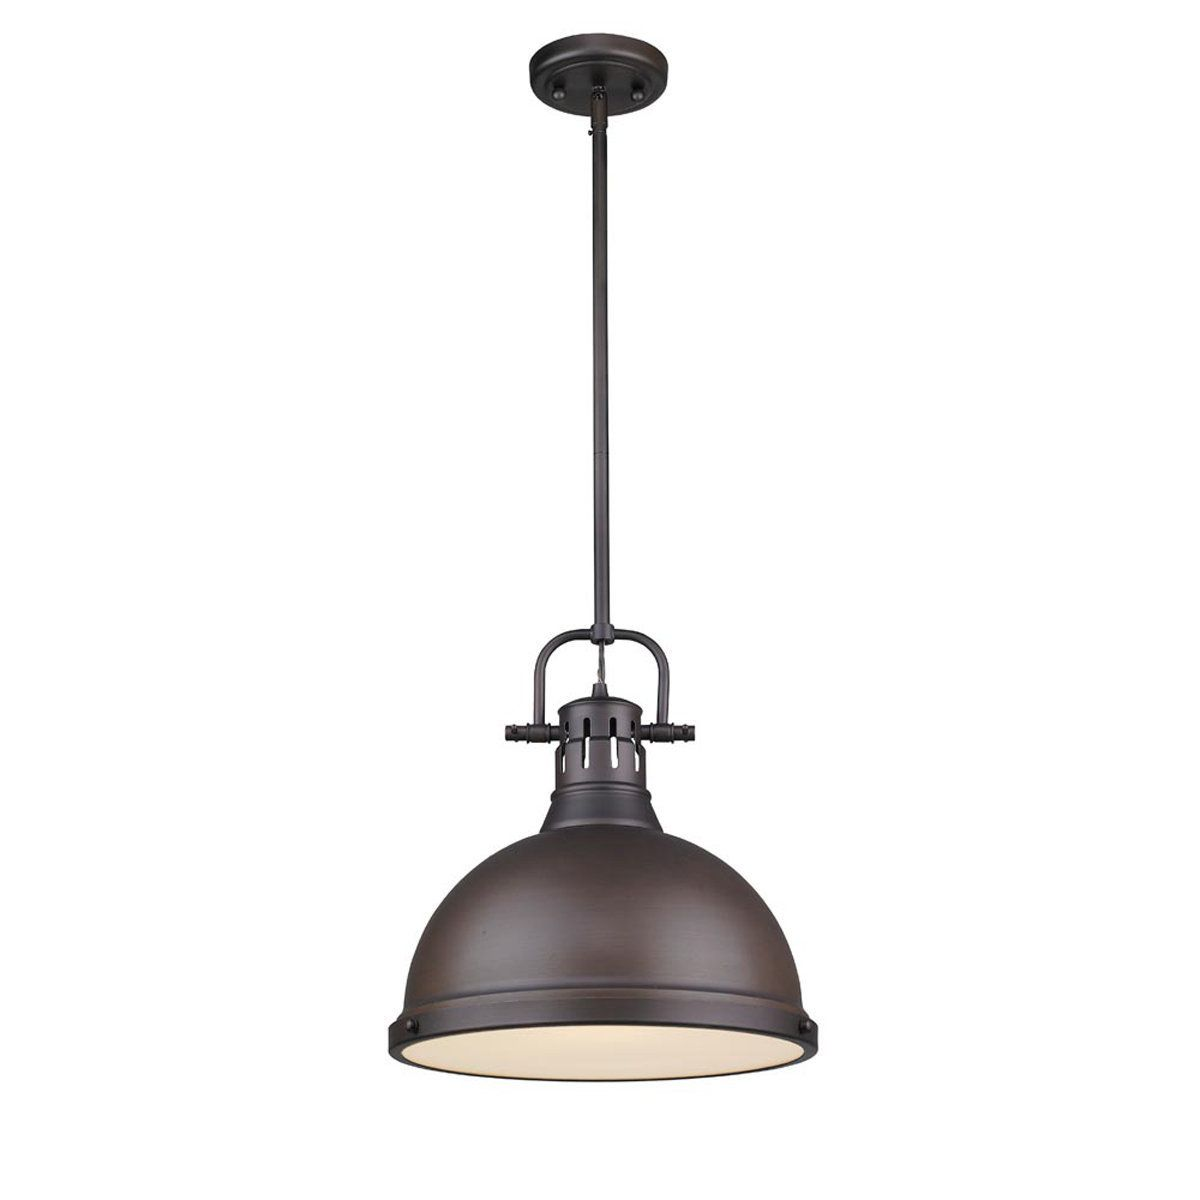 Classic dome large shade pendant light with rod pendant lighting